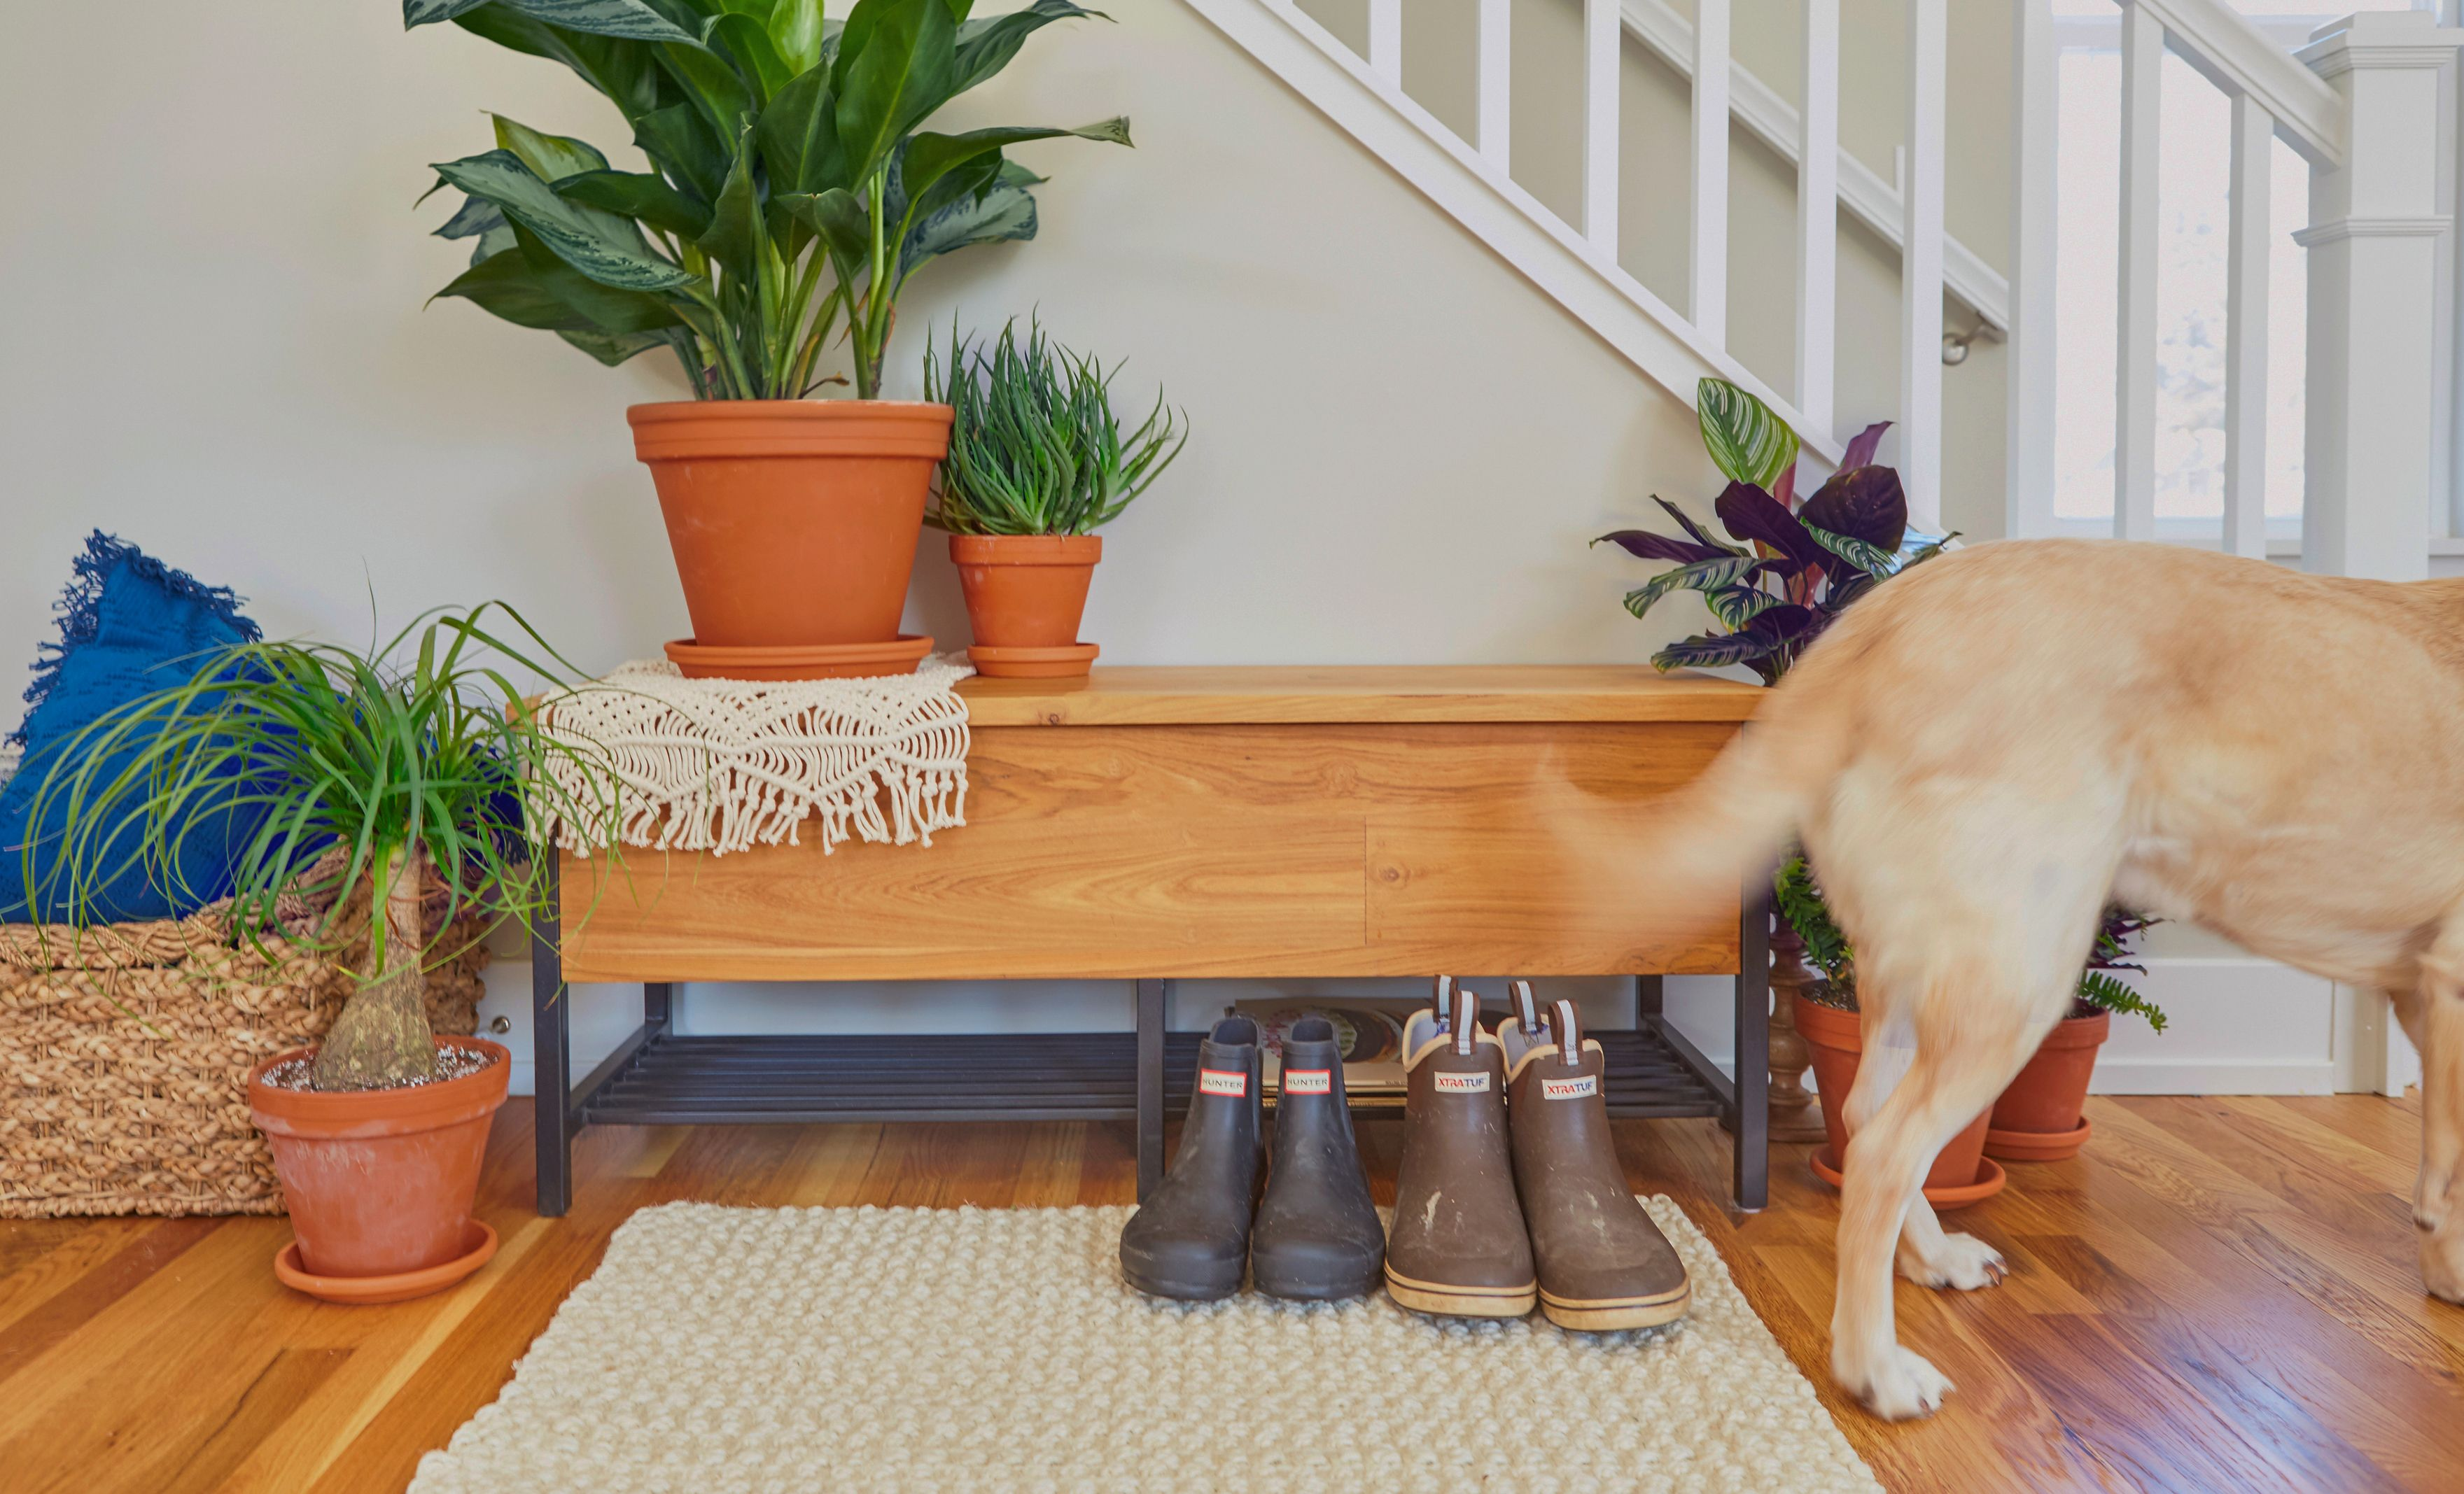 15 petfriendly plants safe for cats and dogs bloomscape